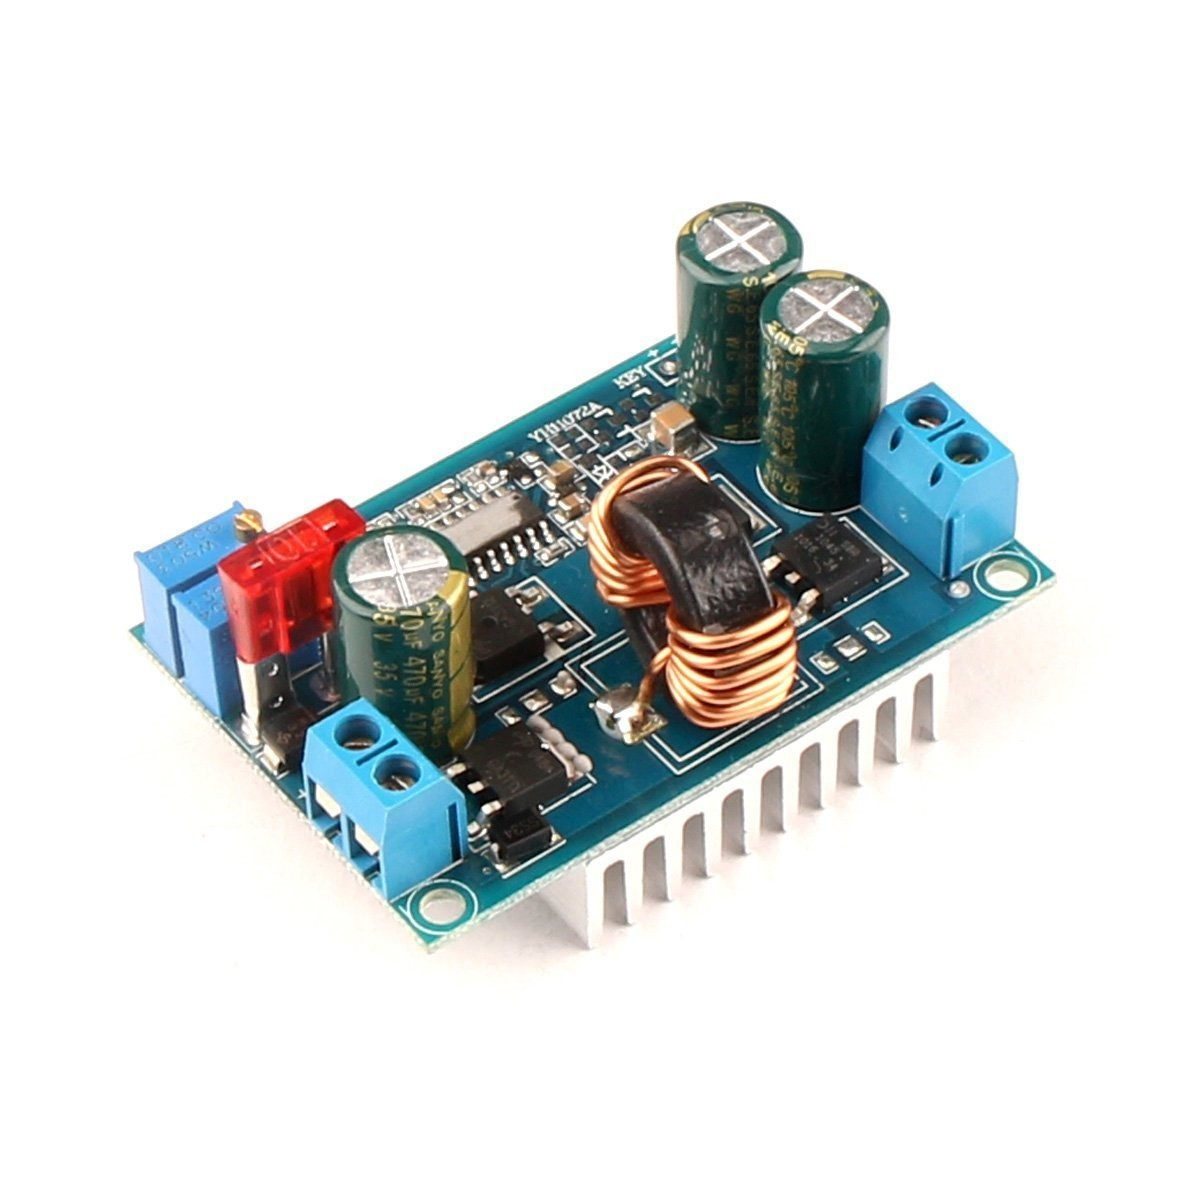 Riorand Dc Synchronous Boost Buck Converter Constant Voltage 12v To 32v For Car Audio Lightbox Moreview